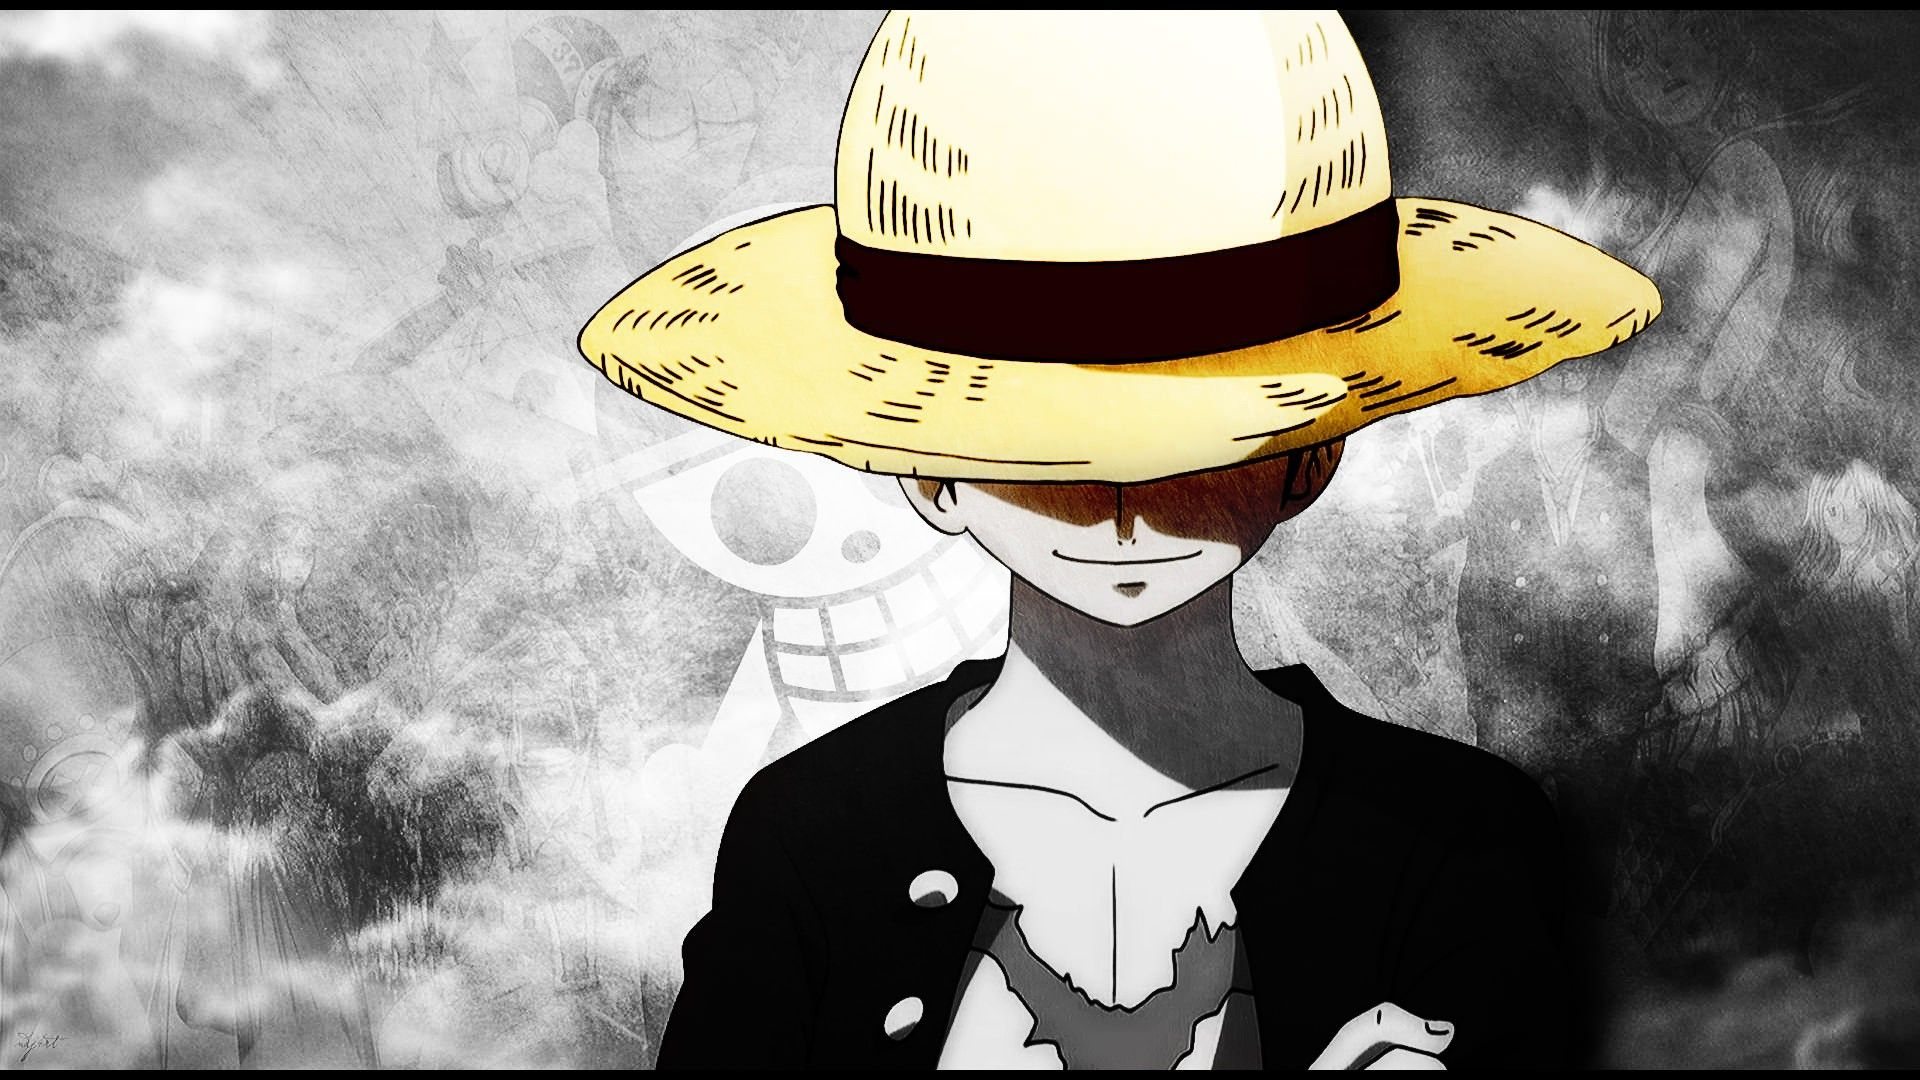 One Piece Wallpapers - Top Free One Piece Backgrounds - WallpaperAccess